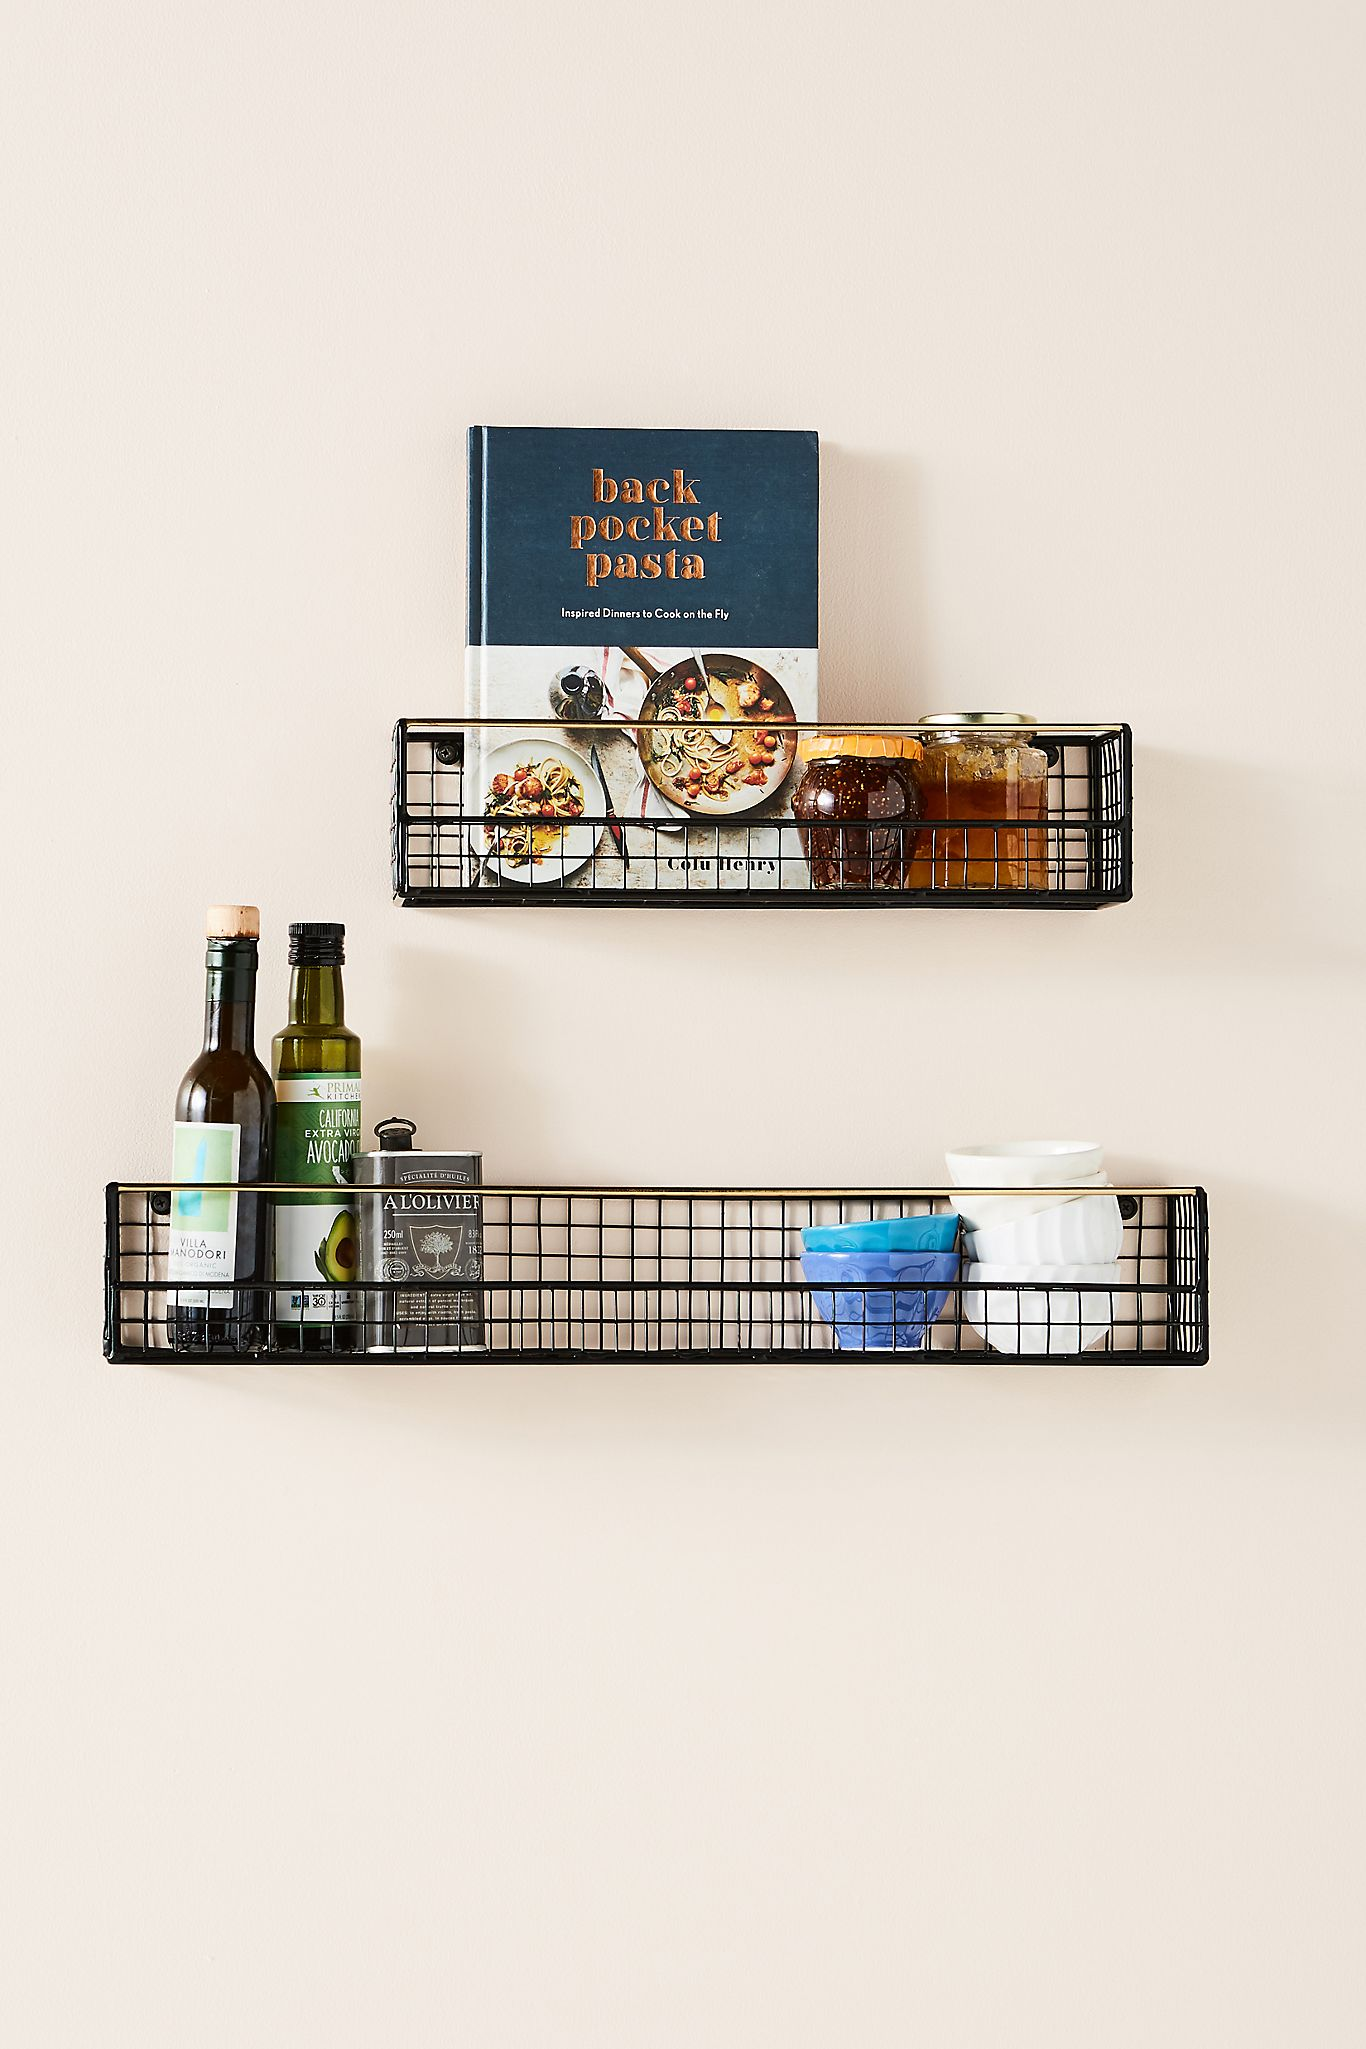 Install Wire Floating Shelves for the Kitchen